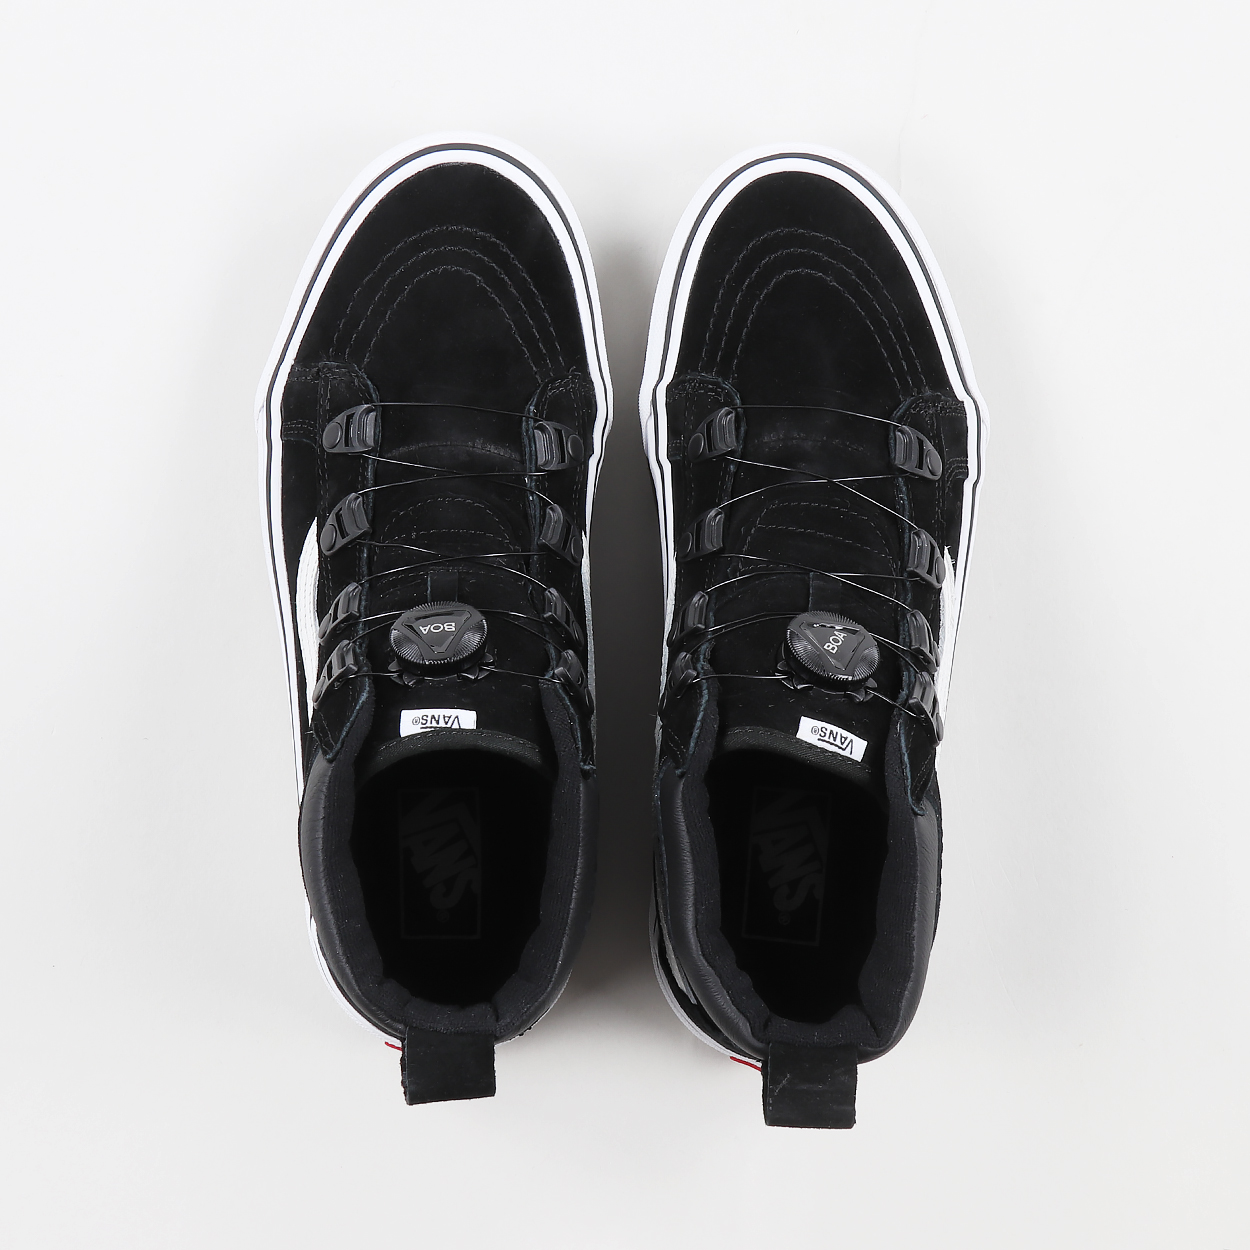 c3064f0718 A pair of fresh and innovative trainers from Vans  All Weather MTE range